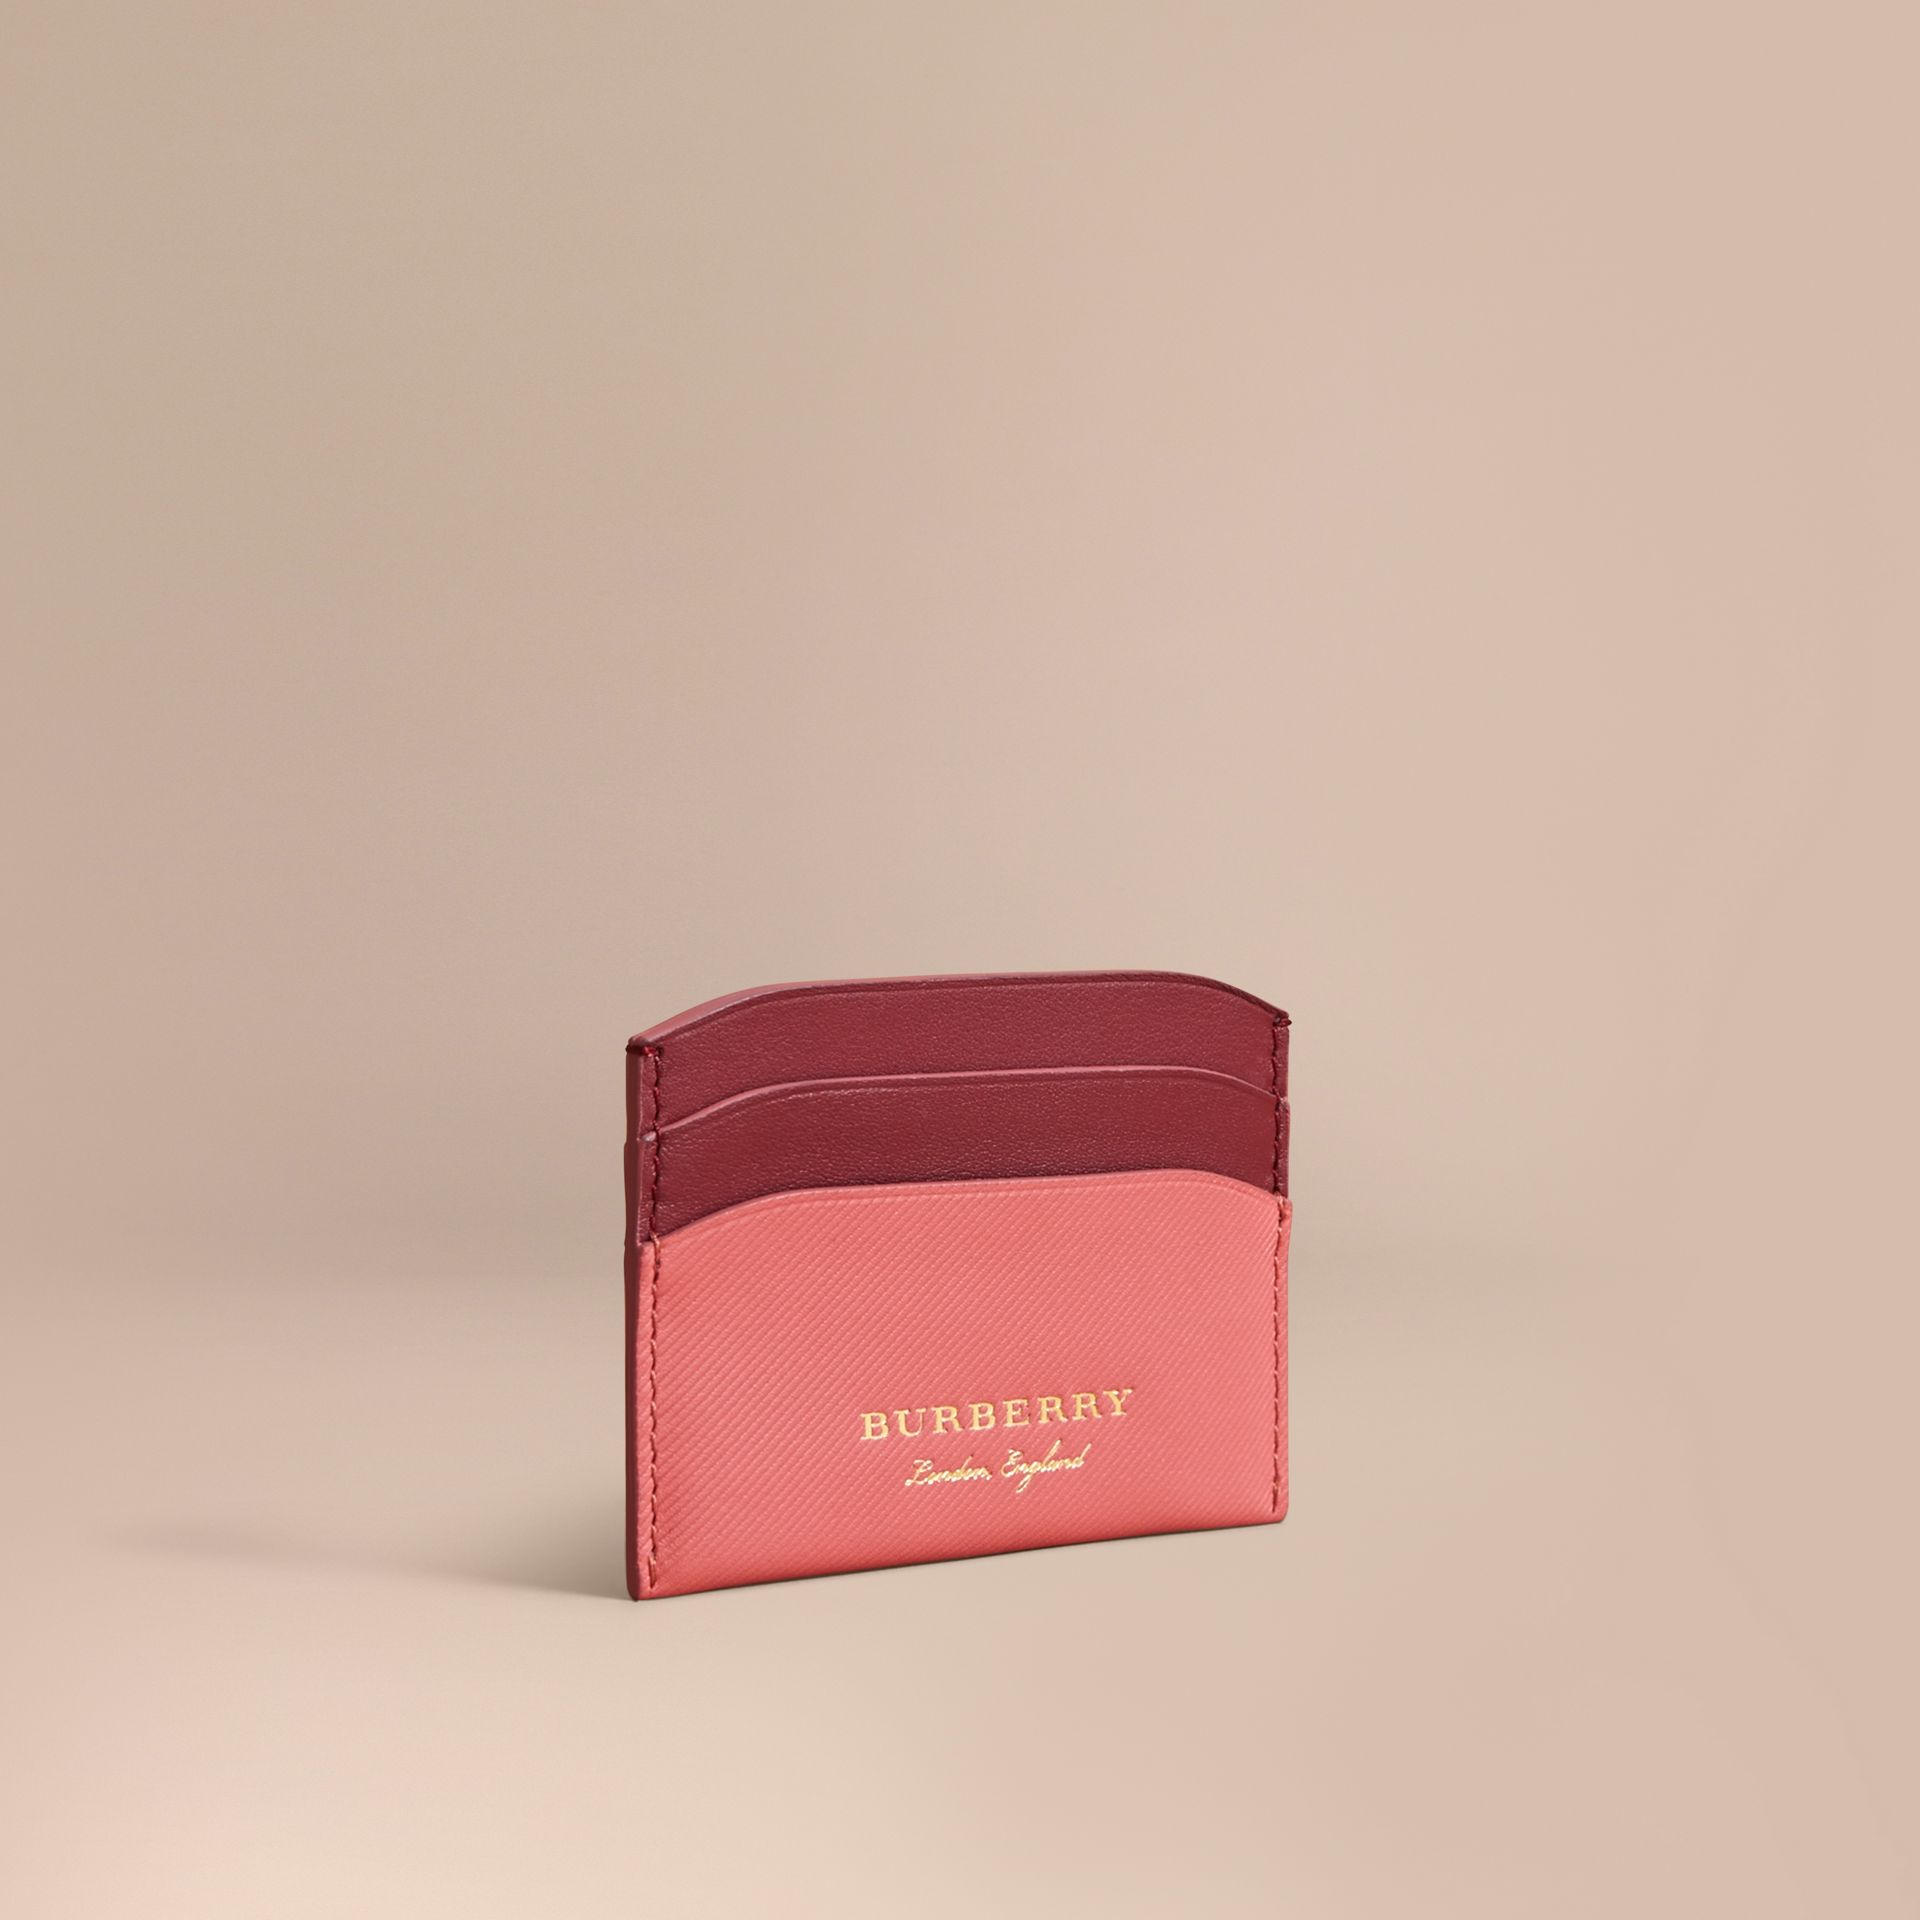 Two-tone Trench Leather Card Case in Blossom Pink/ Antique Red - Women | Burberry Singapore - gallery image 1